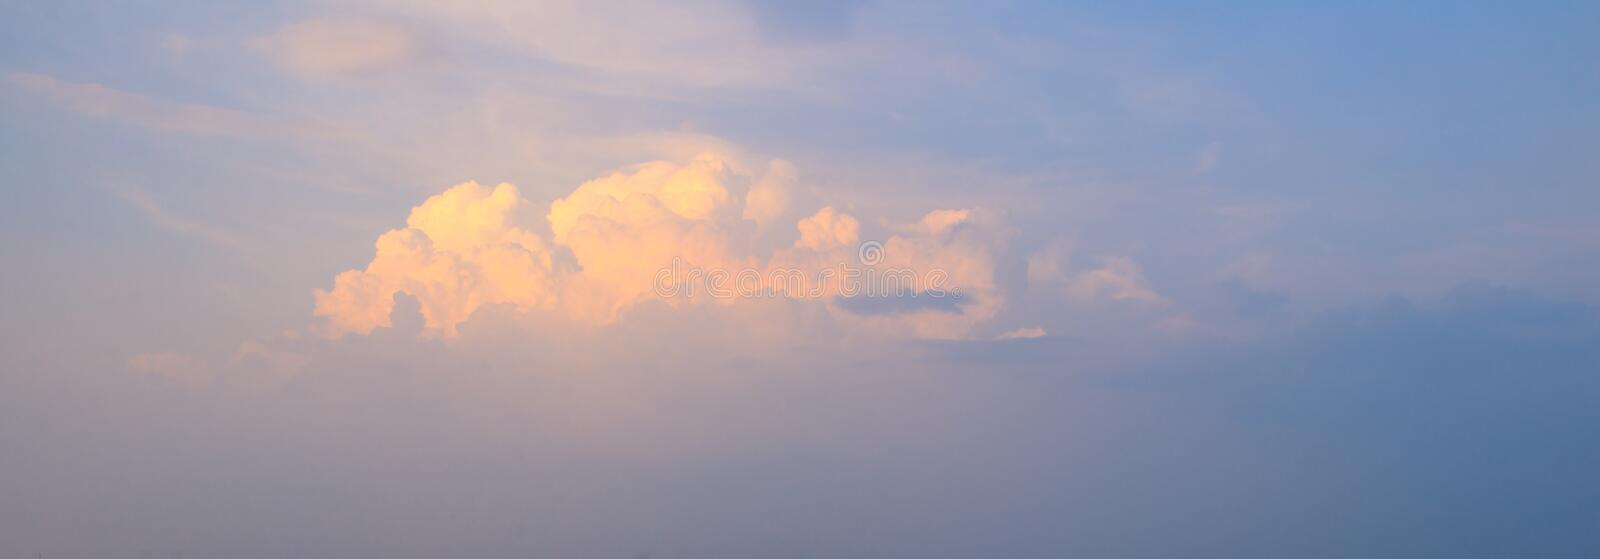 Blue Sky with Cloud and Lighting royalty free stock photo